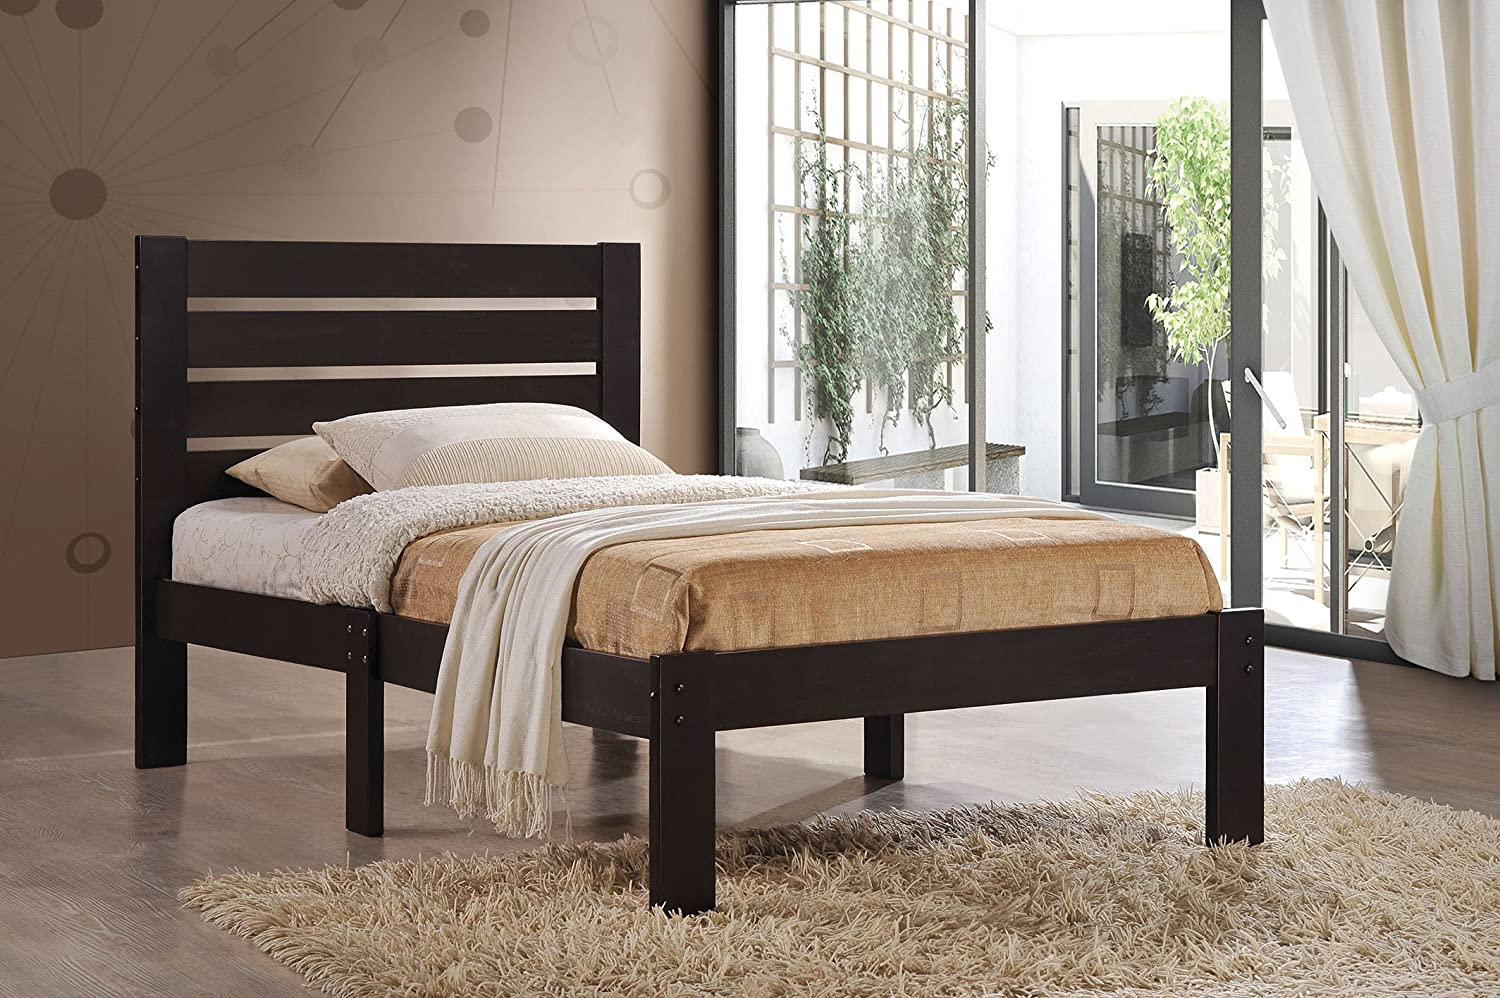 Wooden Contemporary Twin Bed, Slatted Headboard